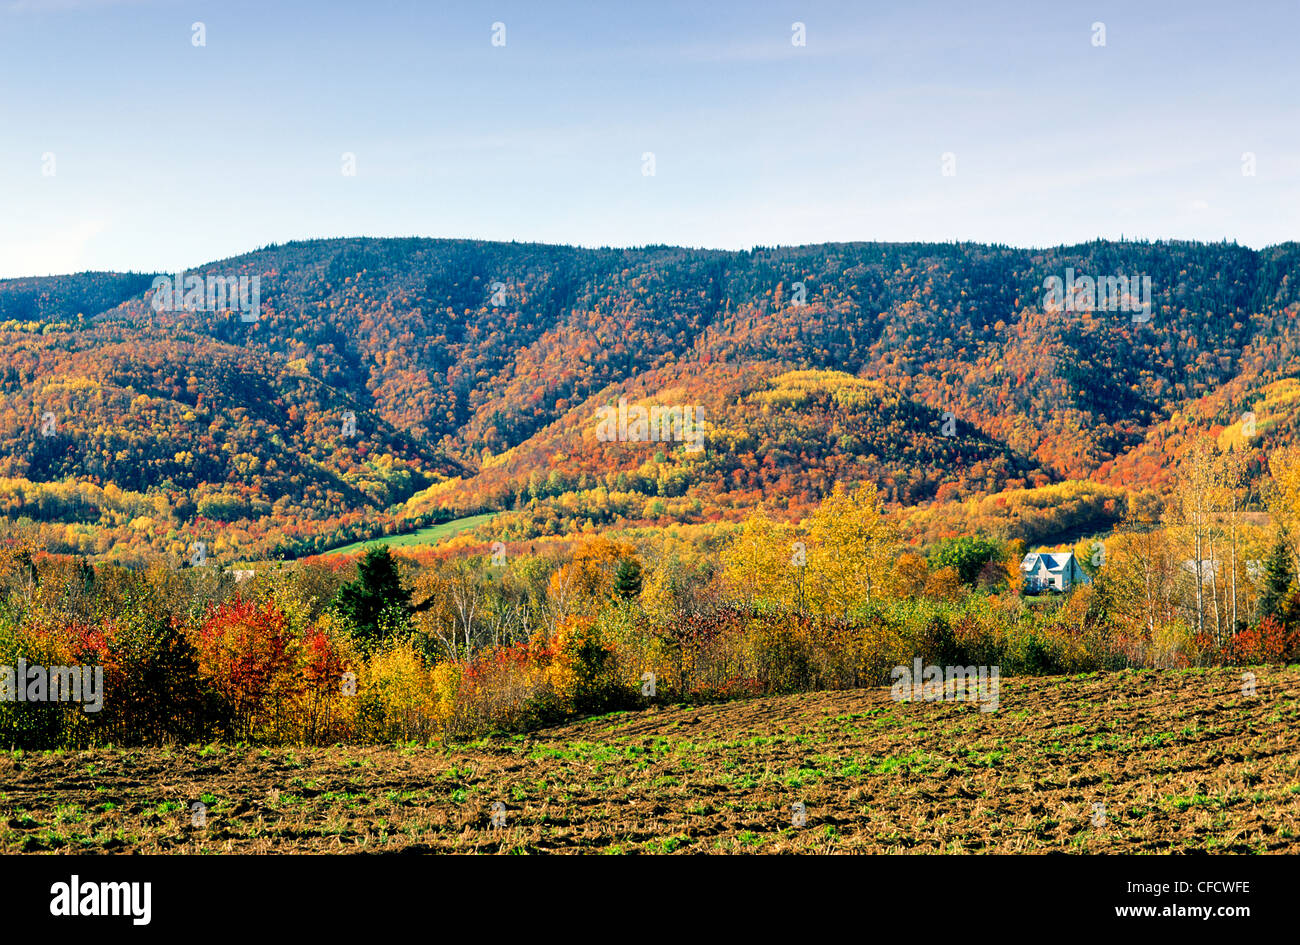 Fall foliage, Maria, Quebec, Canada - Stock Image